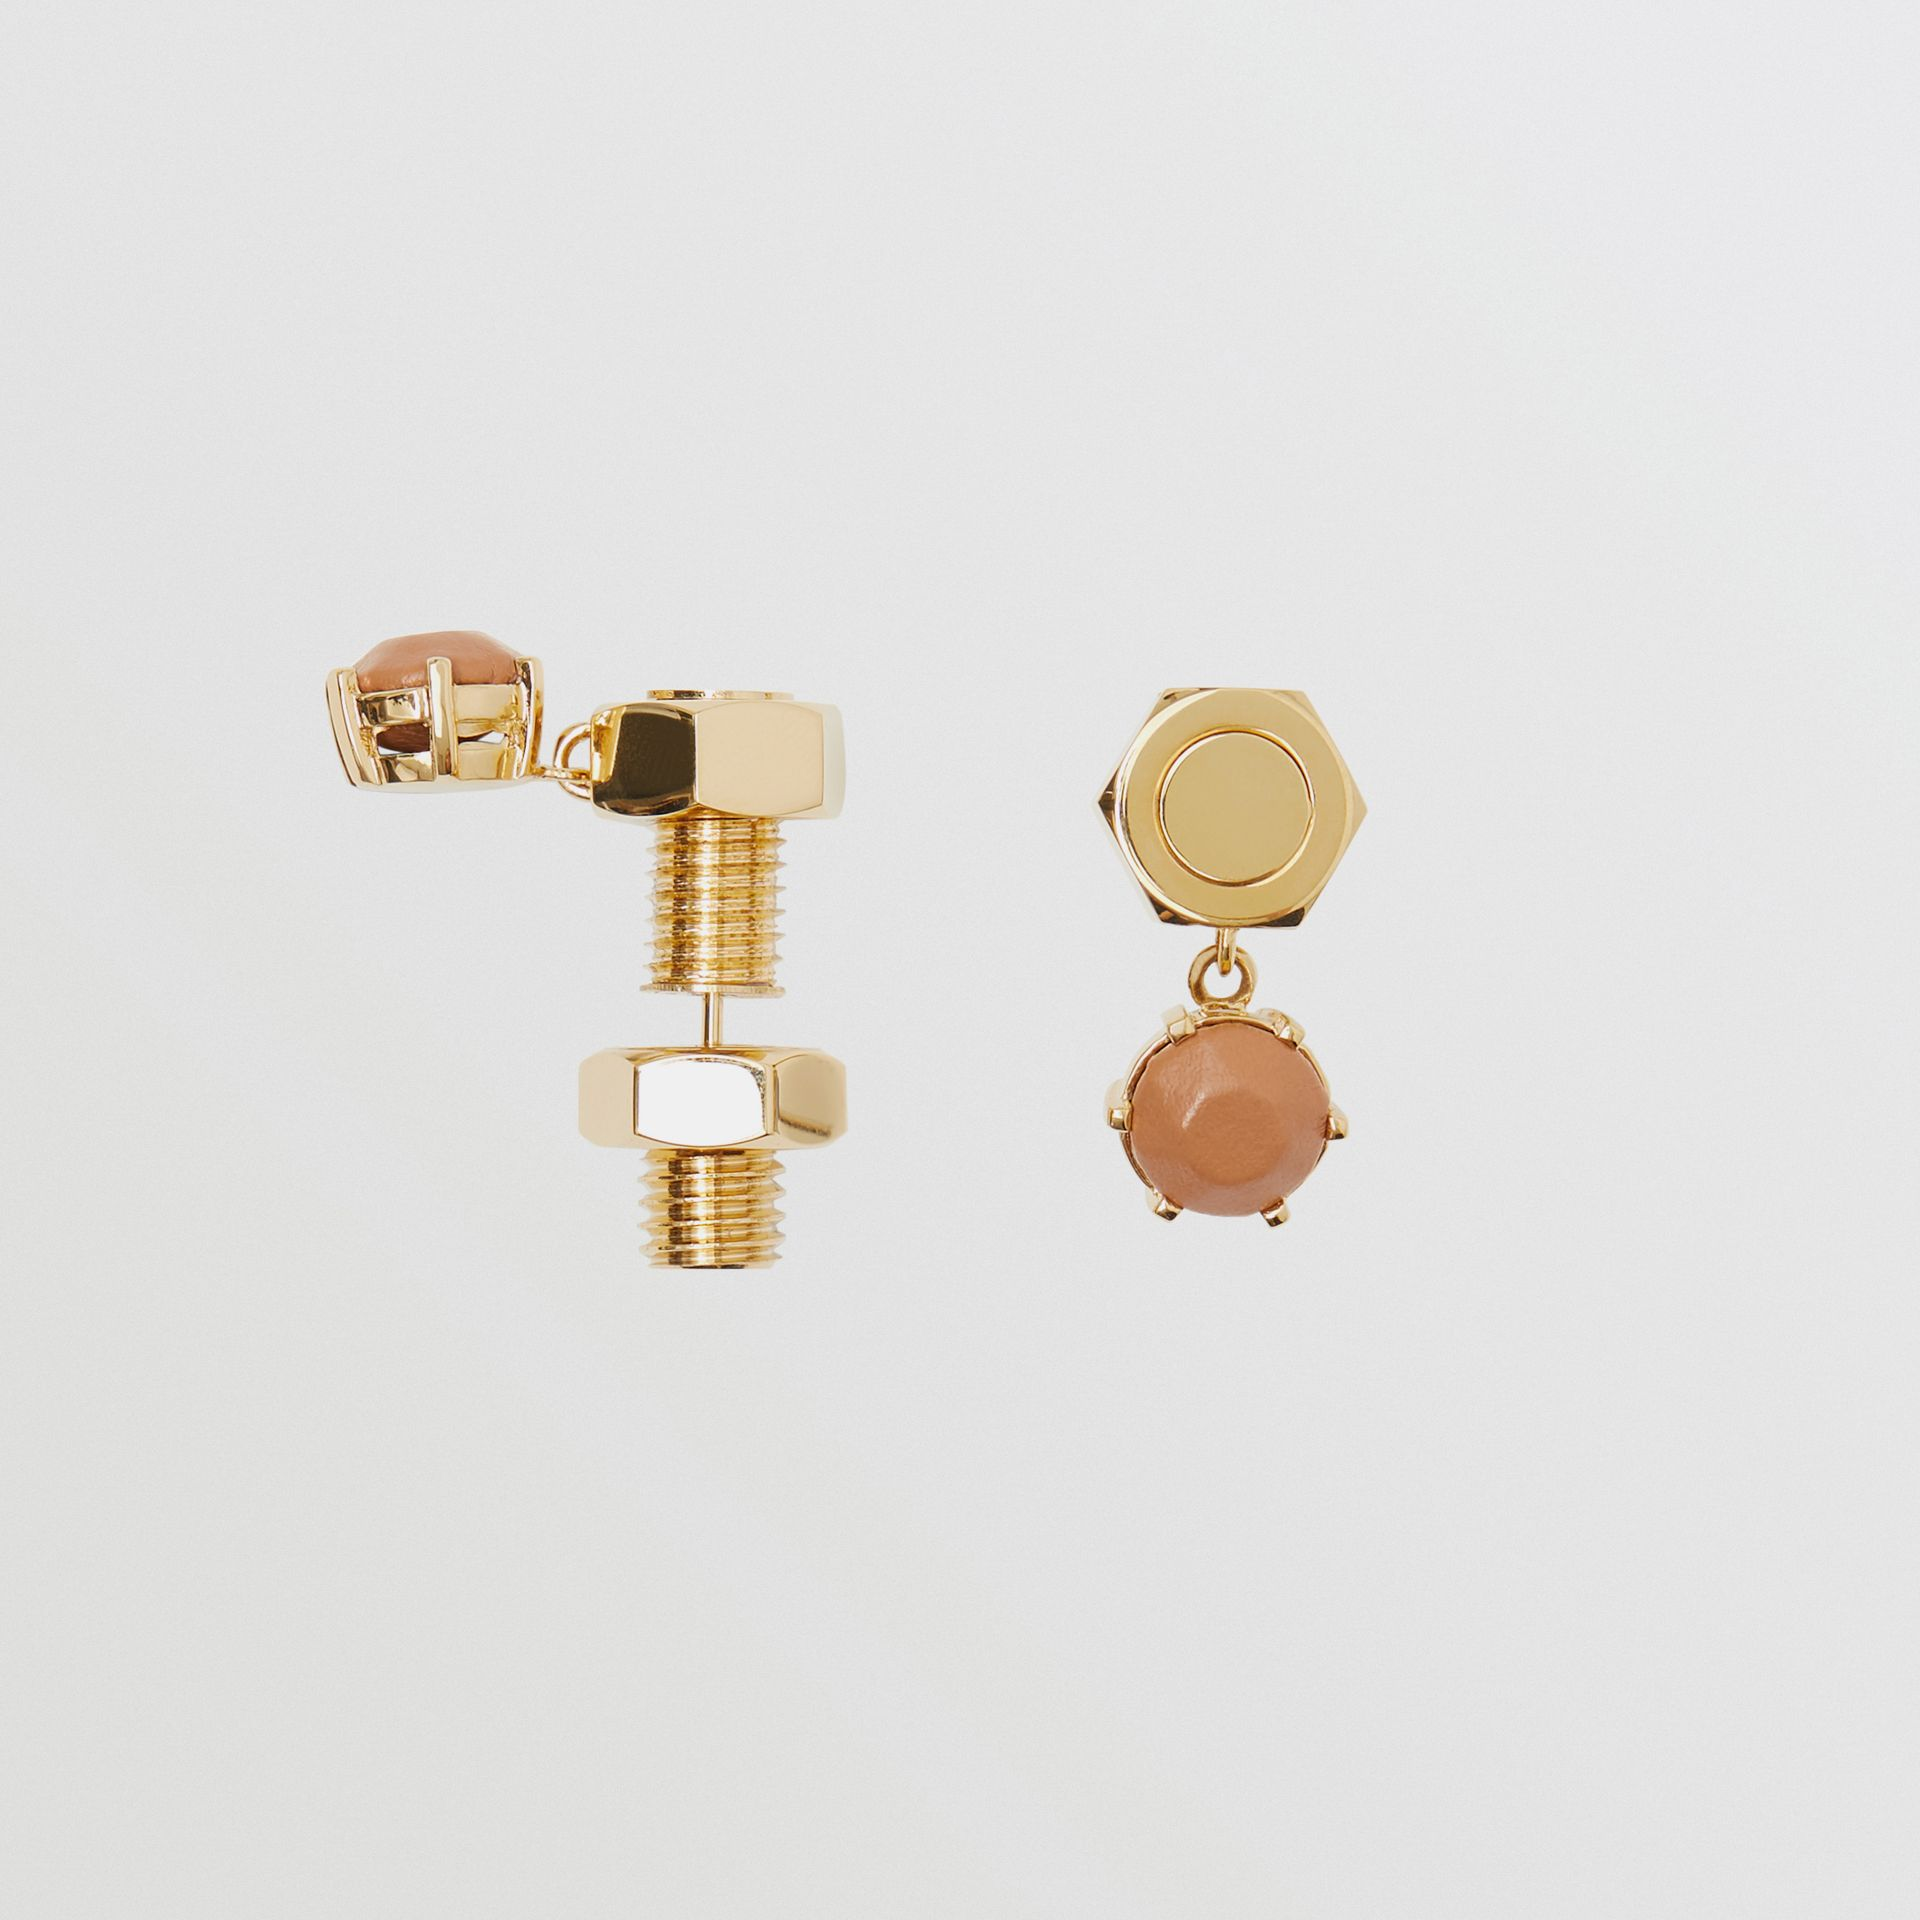 Leather Charm Gold-plated Nut and Bolt Earrings in Nutmeg/light - Women | Burberry Hong Kong S.A.R - gallery image 3